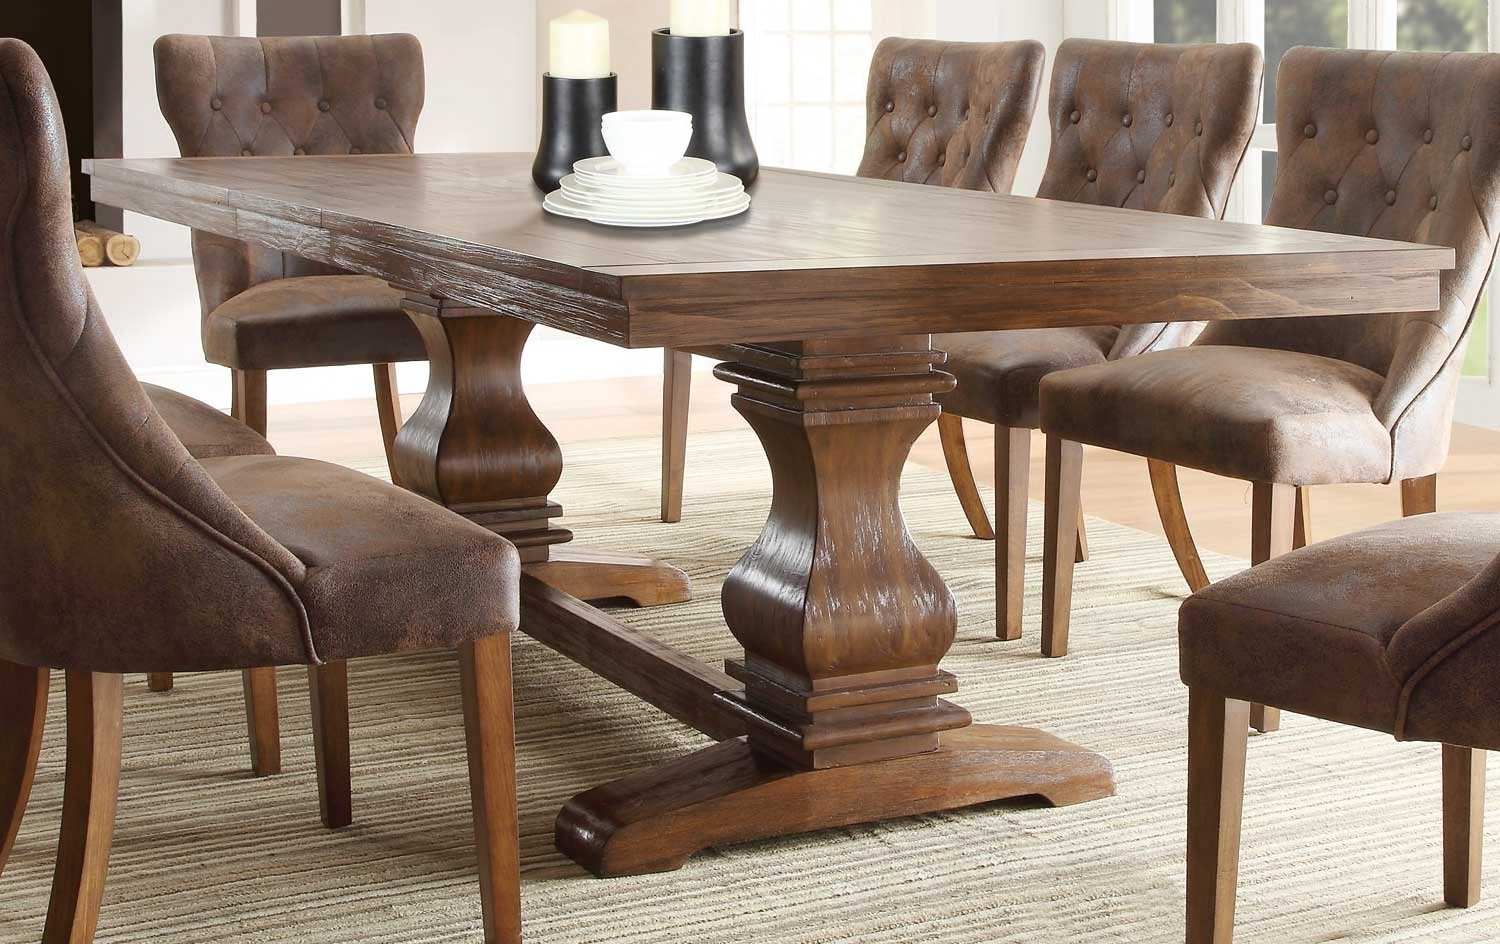 Widely Used Oval Reclaimed Wood Dining Tables With Dining Chairs Cozy Rustic Modern Dining Chairs Images Upholstery (View 23 of 25)